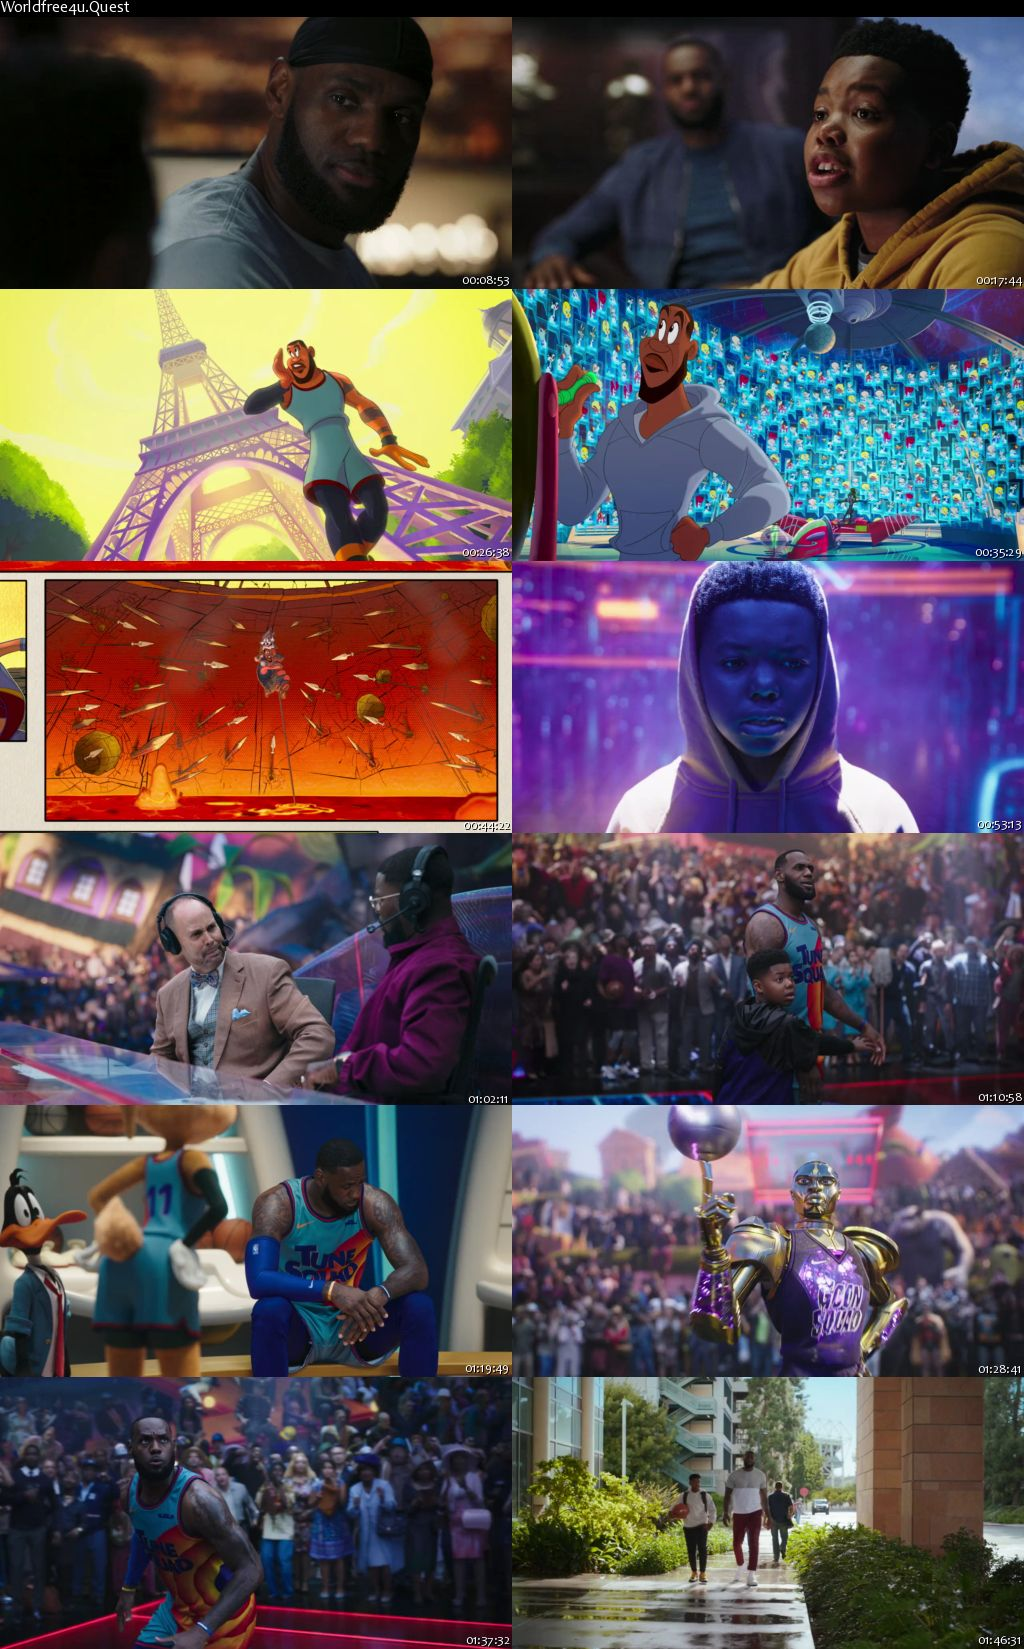 Space Jam A New Legacy 2021 English Movie Download || HDRip 720p